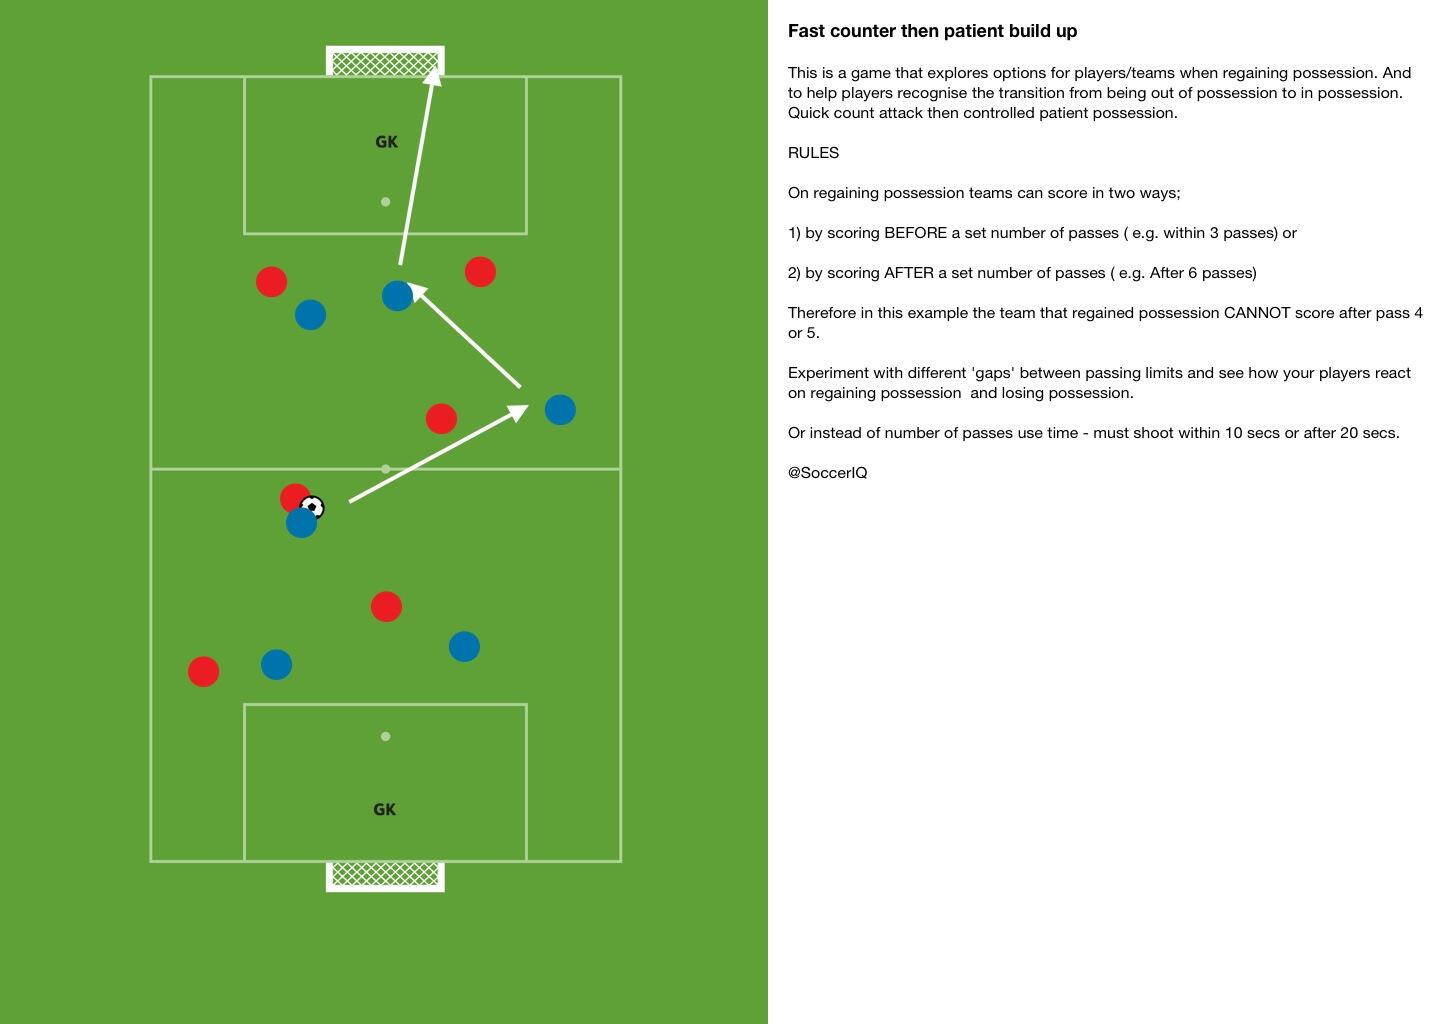 Previous 'regaining possession' game but with added suggestion of time limits instead of passing limits. http://t.co/wZv5JYkeib